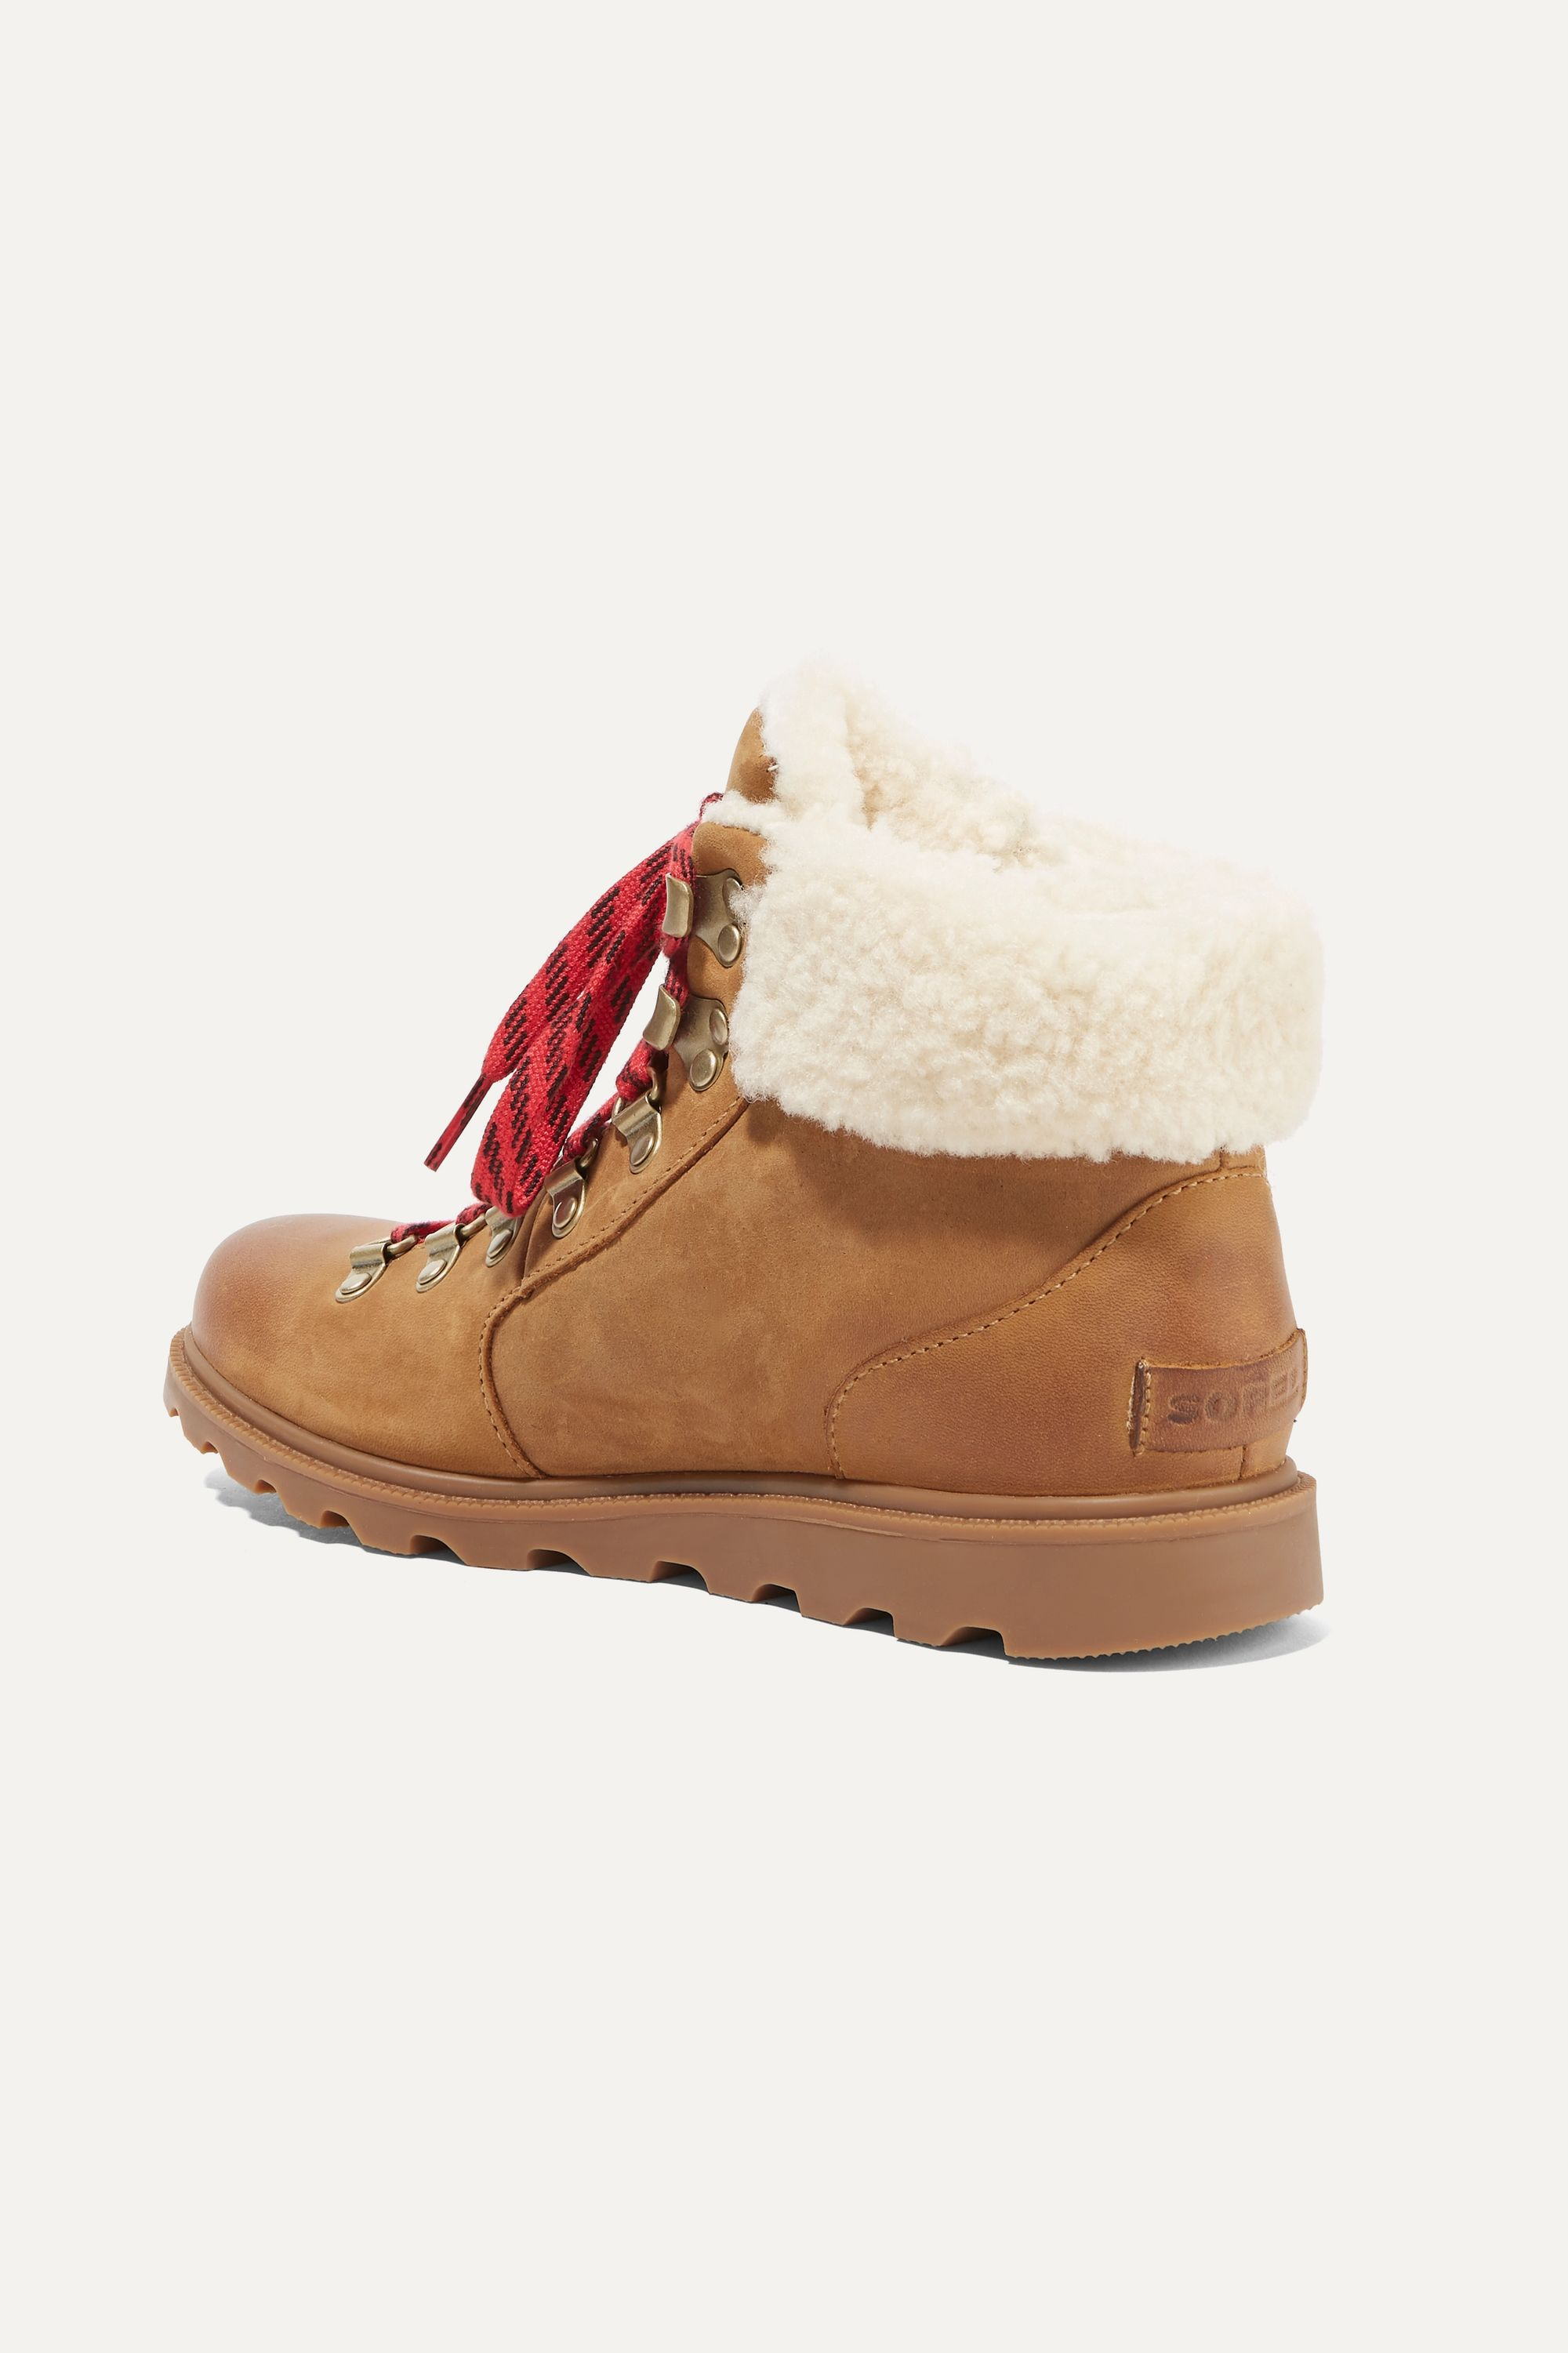 Sorel Ainsley Conquest shearling-trimmed waterproof leather ankle boots